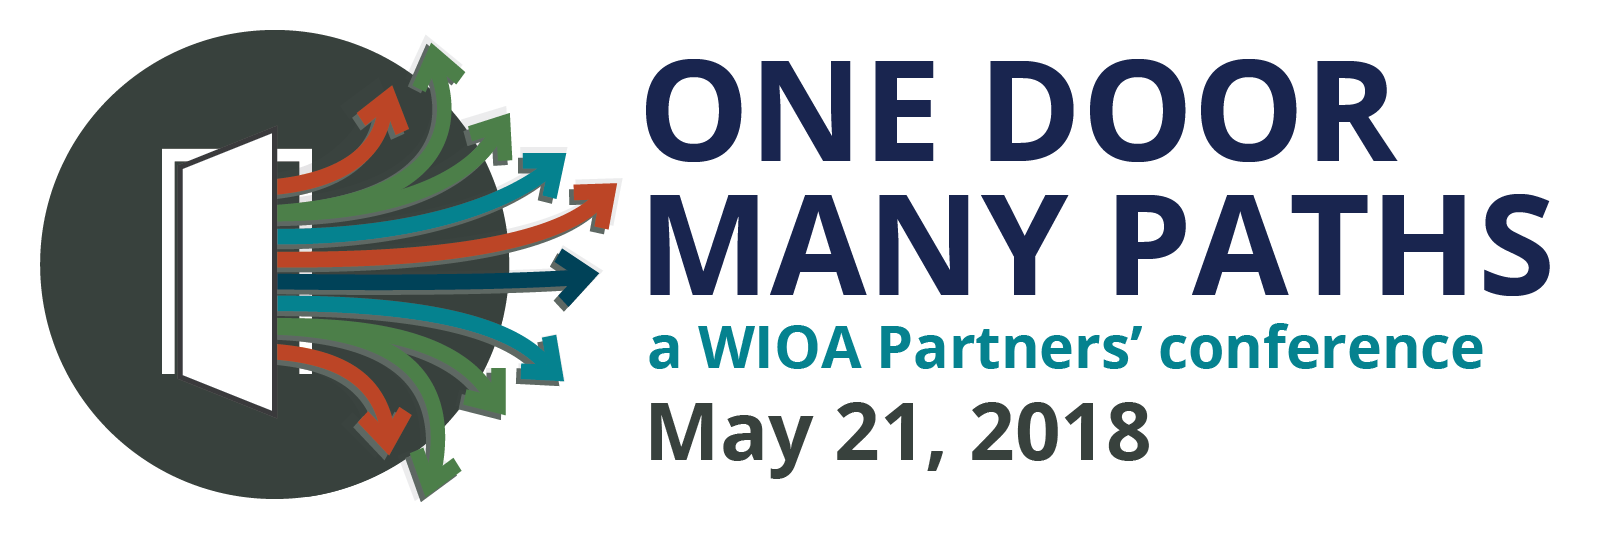 One Door Many Paths (a WIOA partners' conference) May 21, 2018